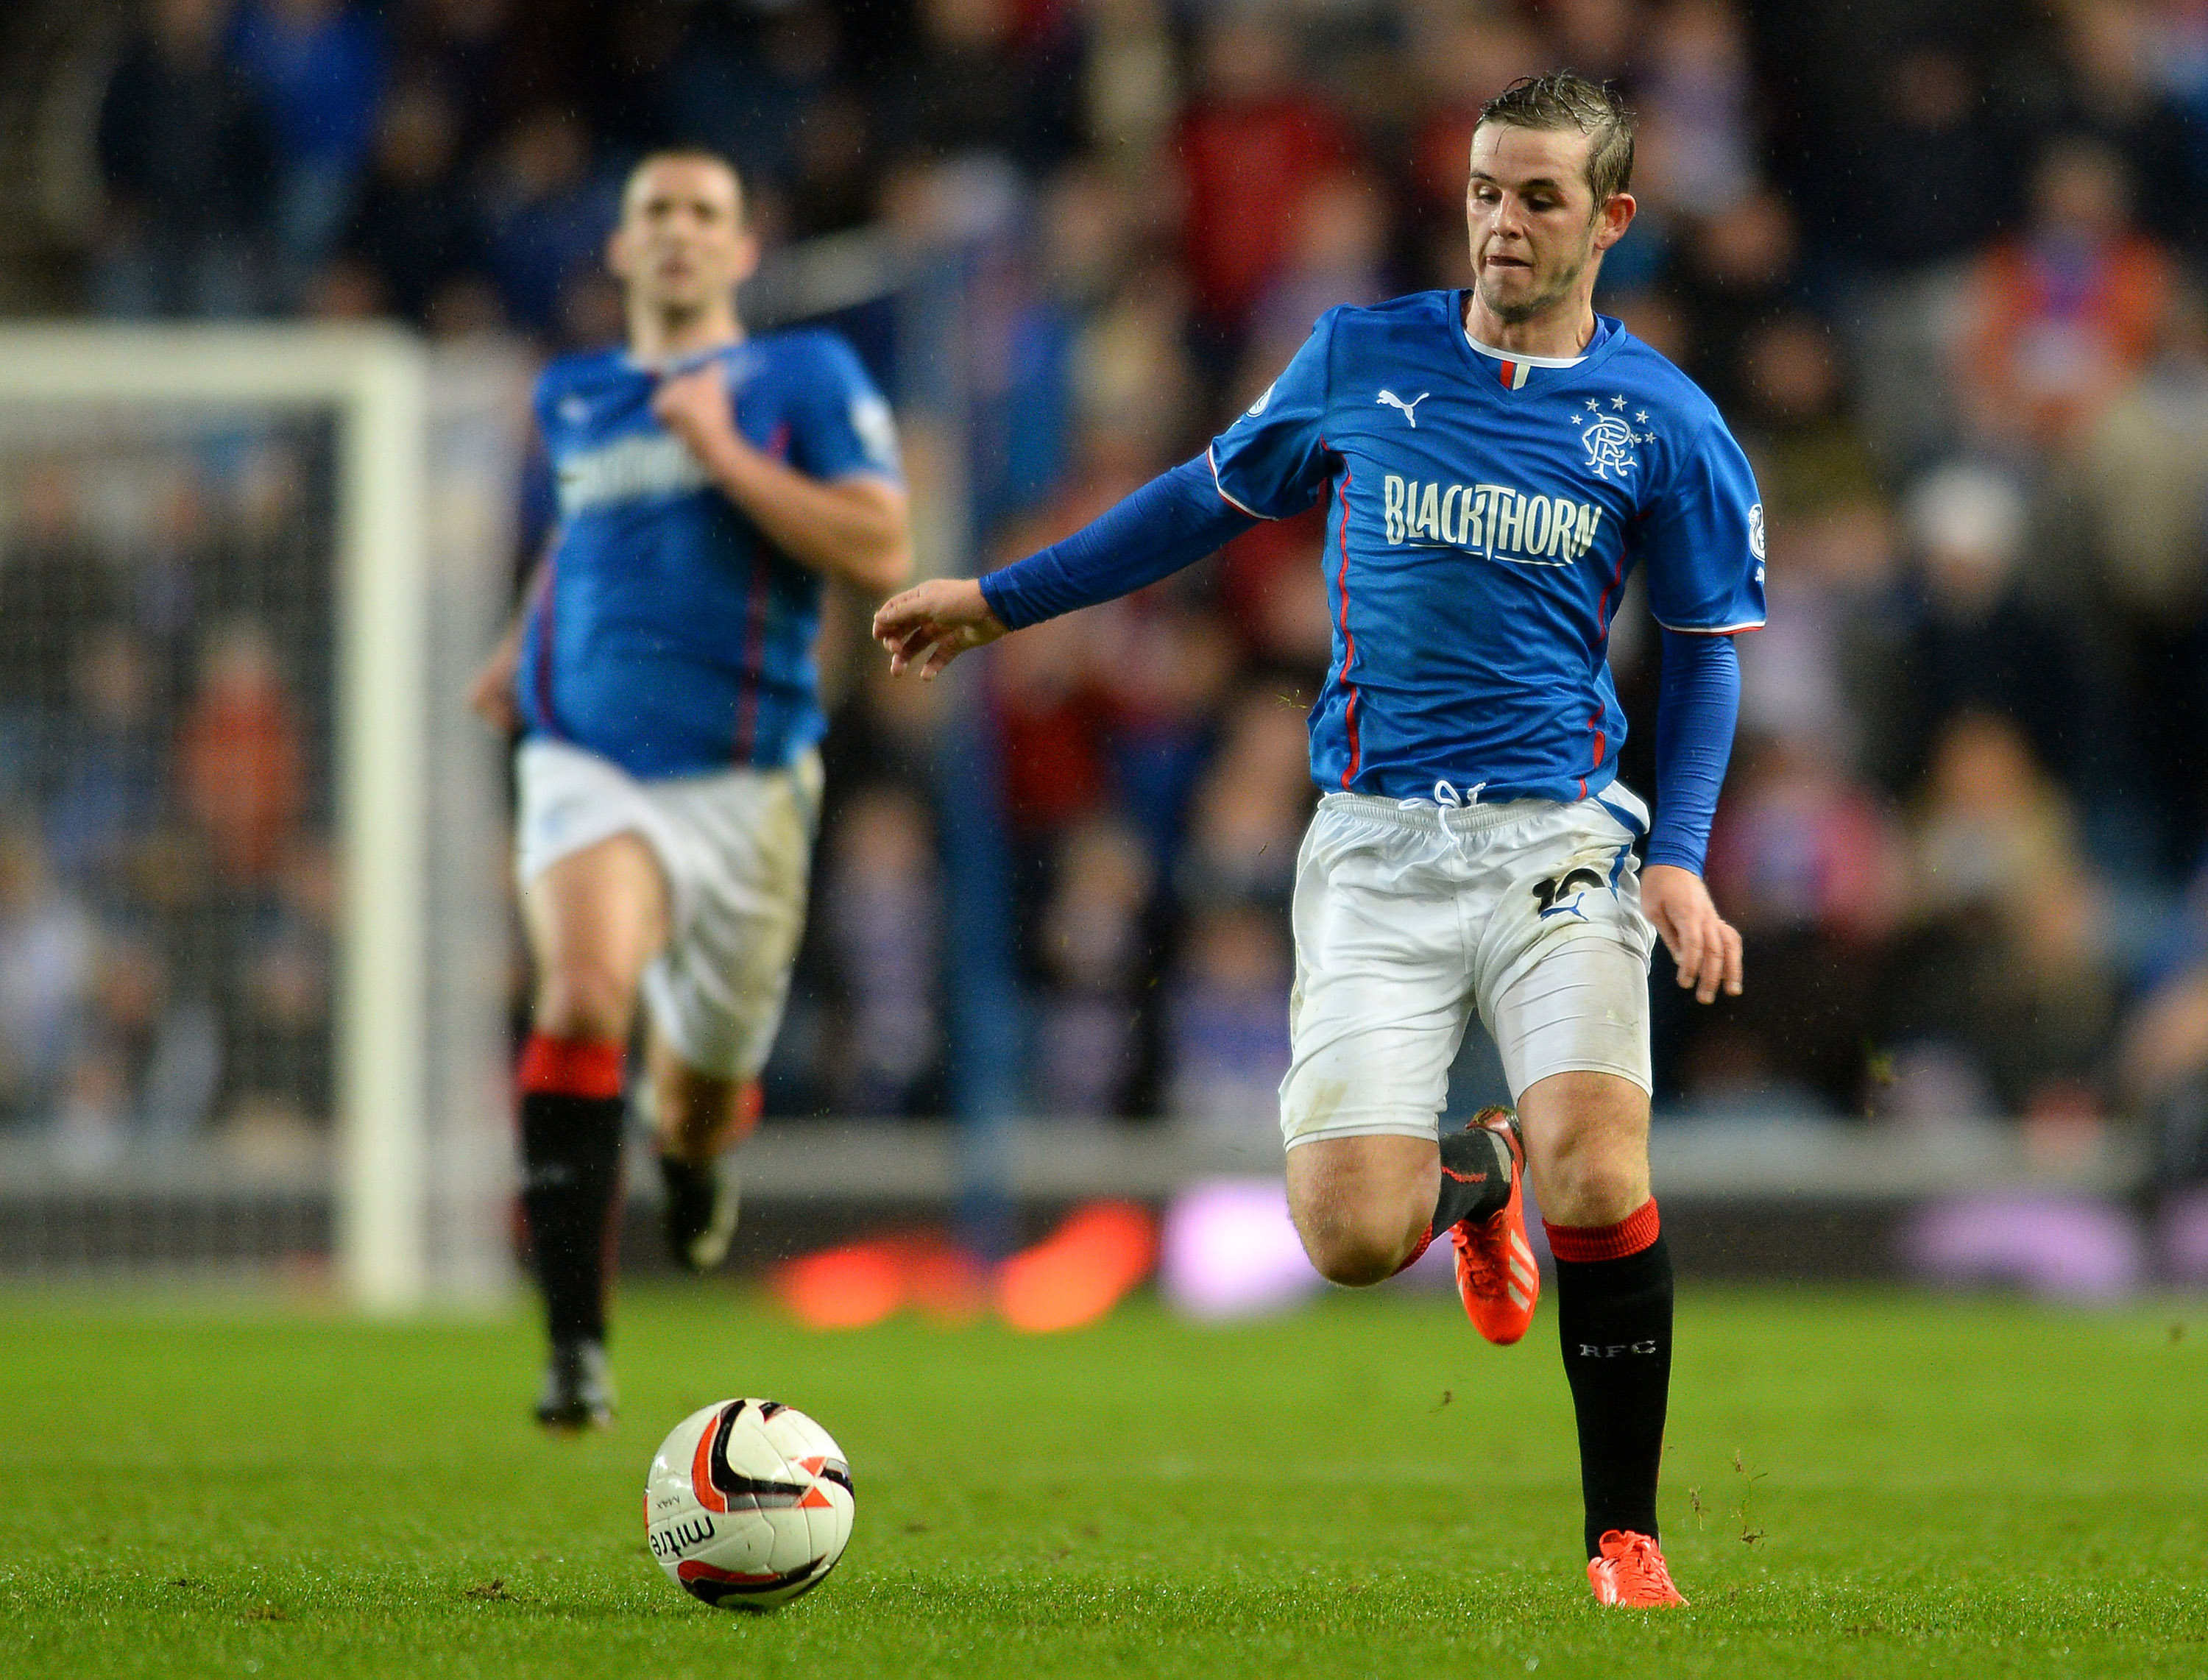 Should Rangers get the plaudits for the their League One title win?